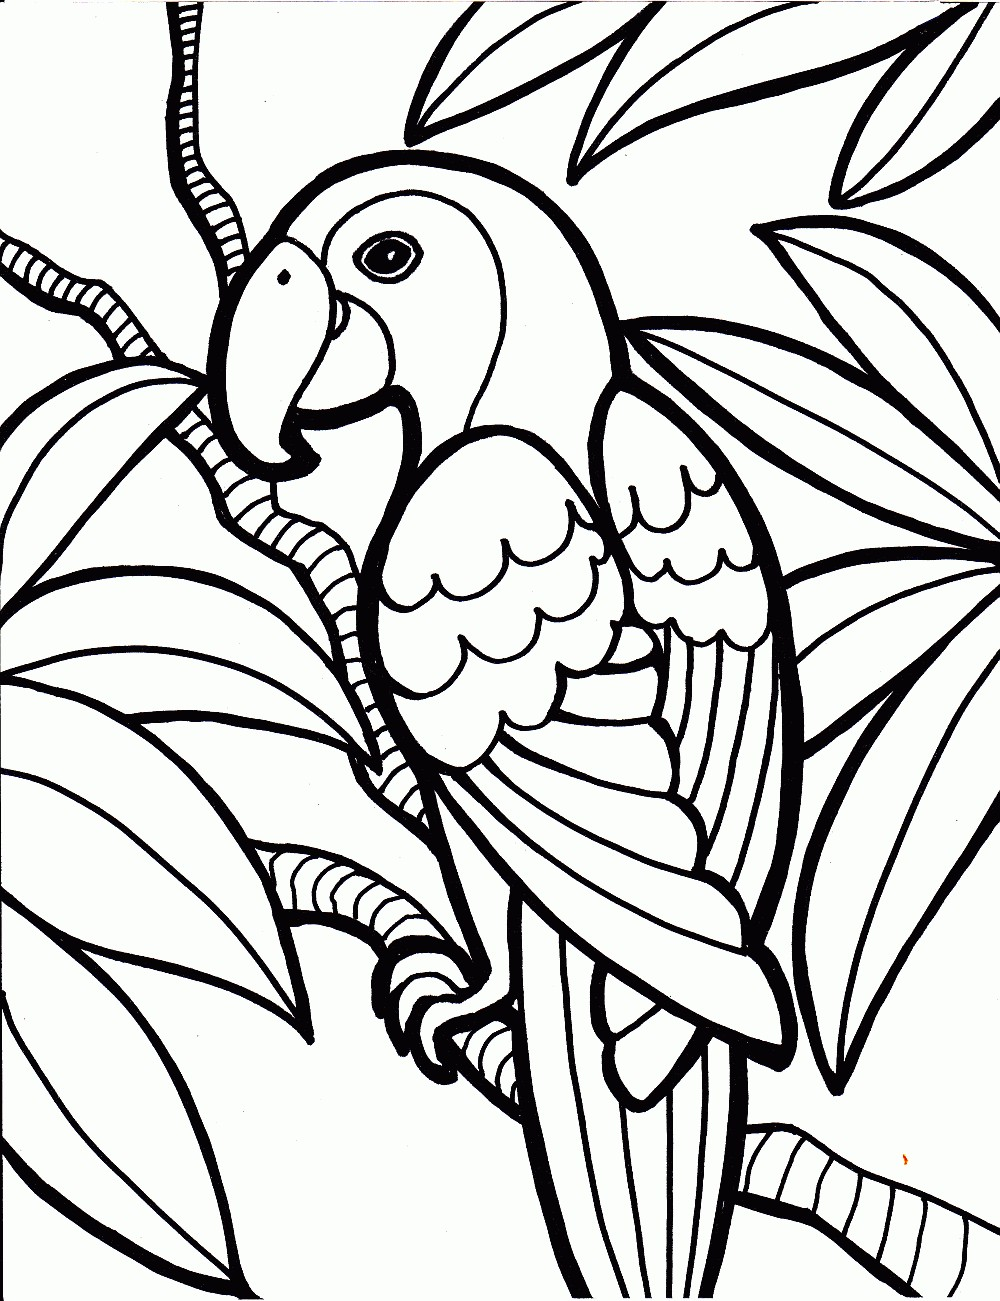 Coloring Pages Coloring Pages Bird bird color pages futpal com flying coloring getcoloringpages